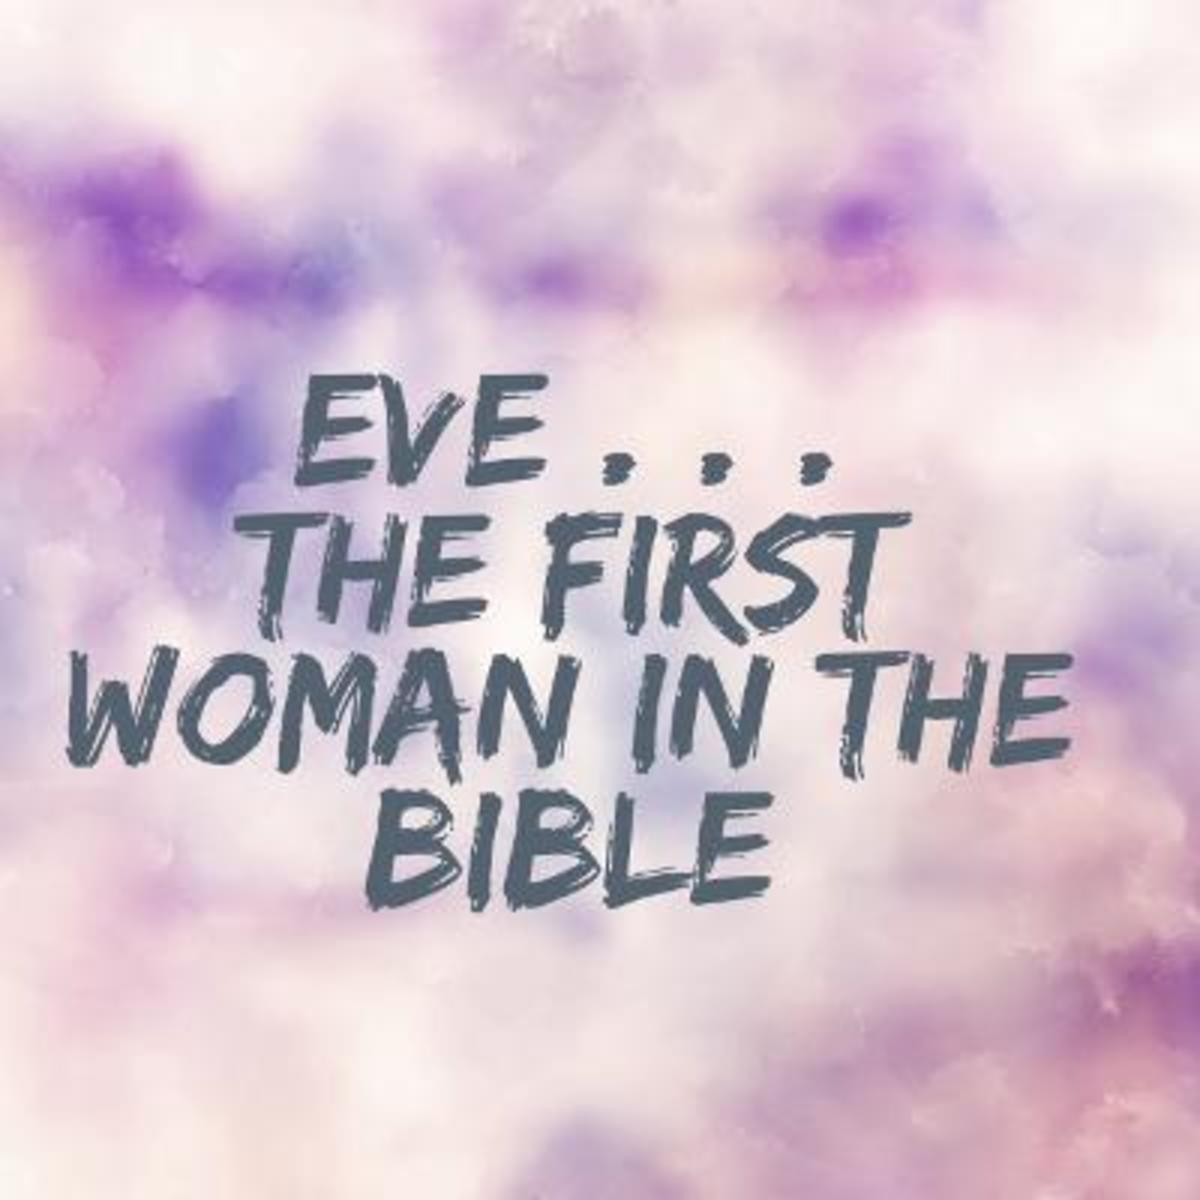 All About Eve: The First Woman in the Bible